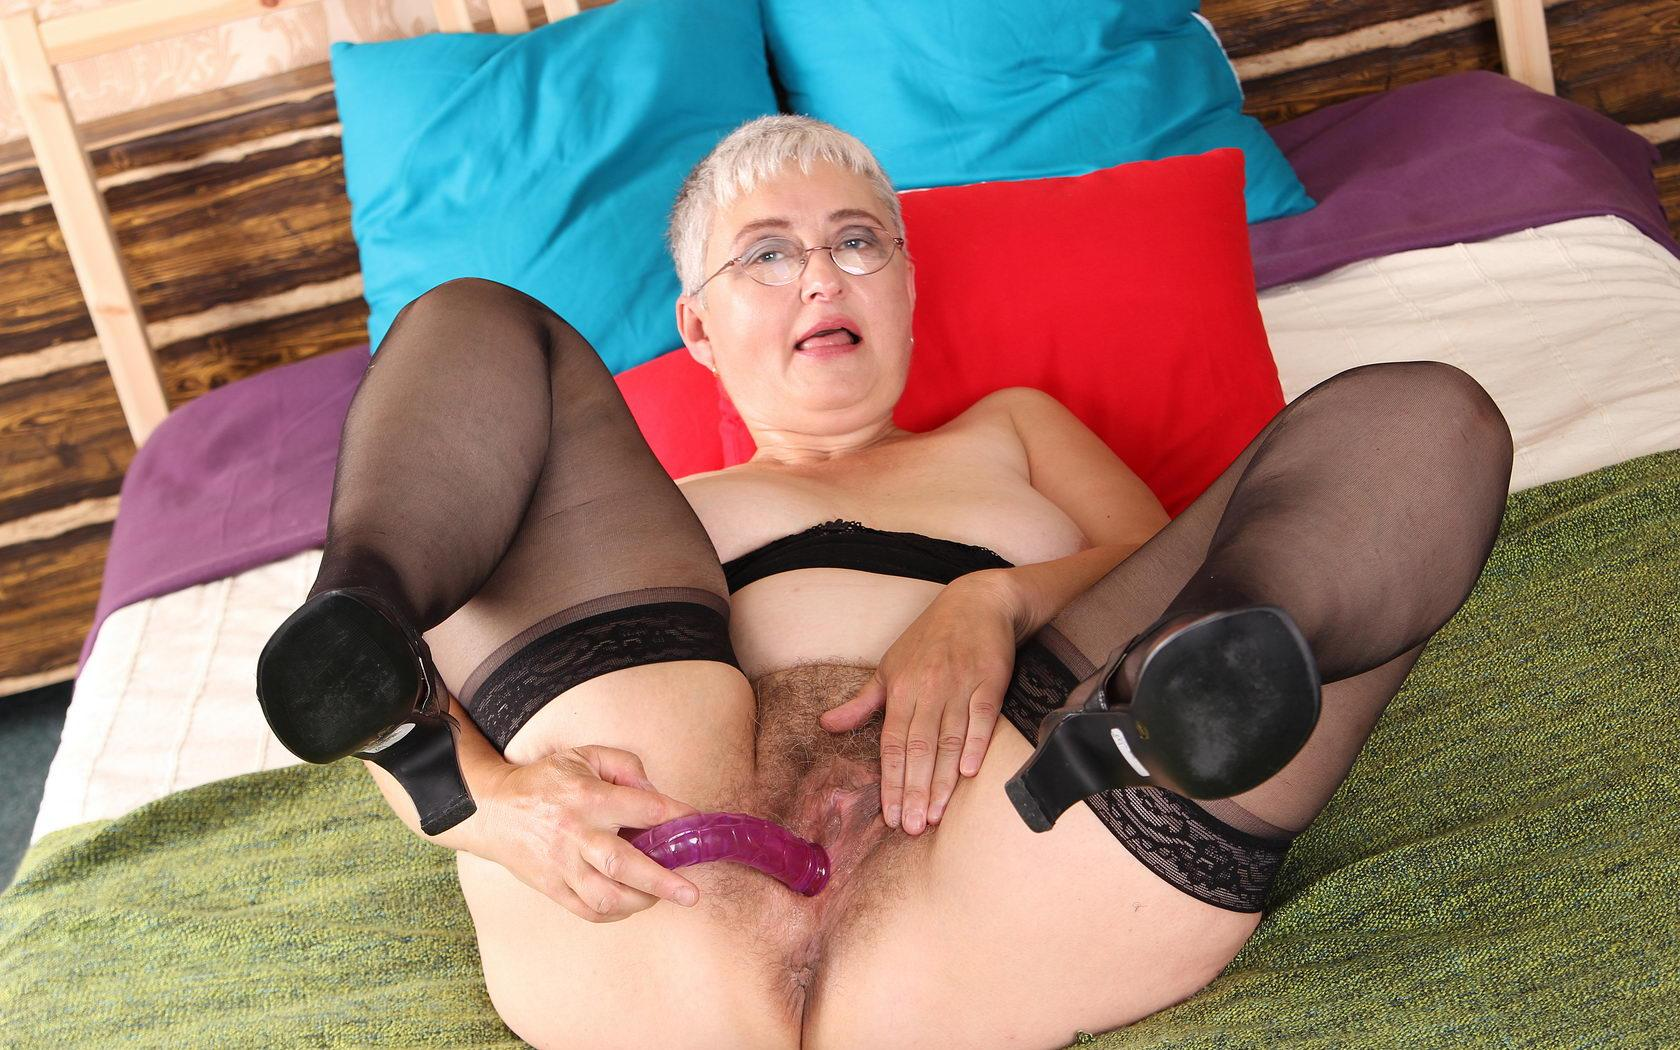 Madison a seductive granny wants to make you cum inside her hairy cunt and on her ass